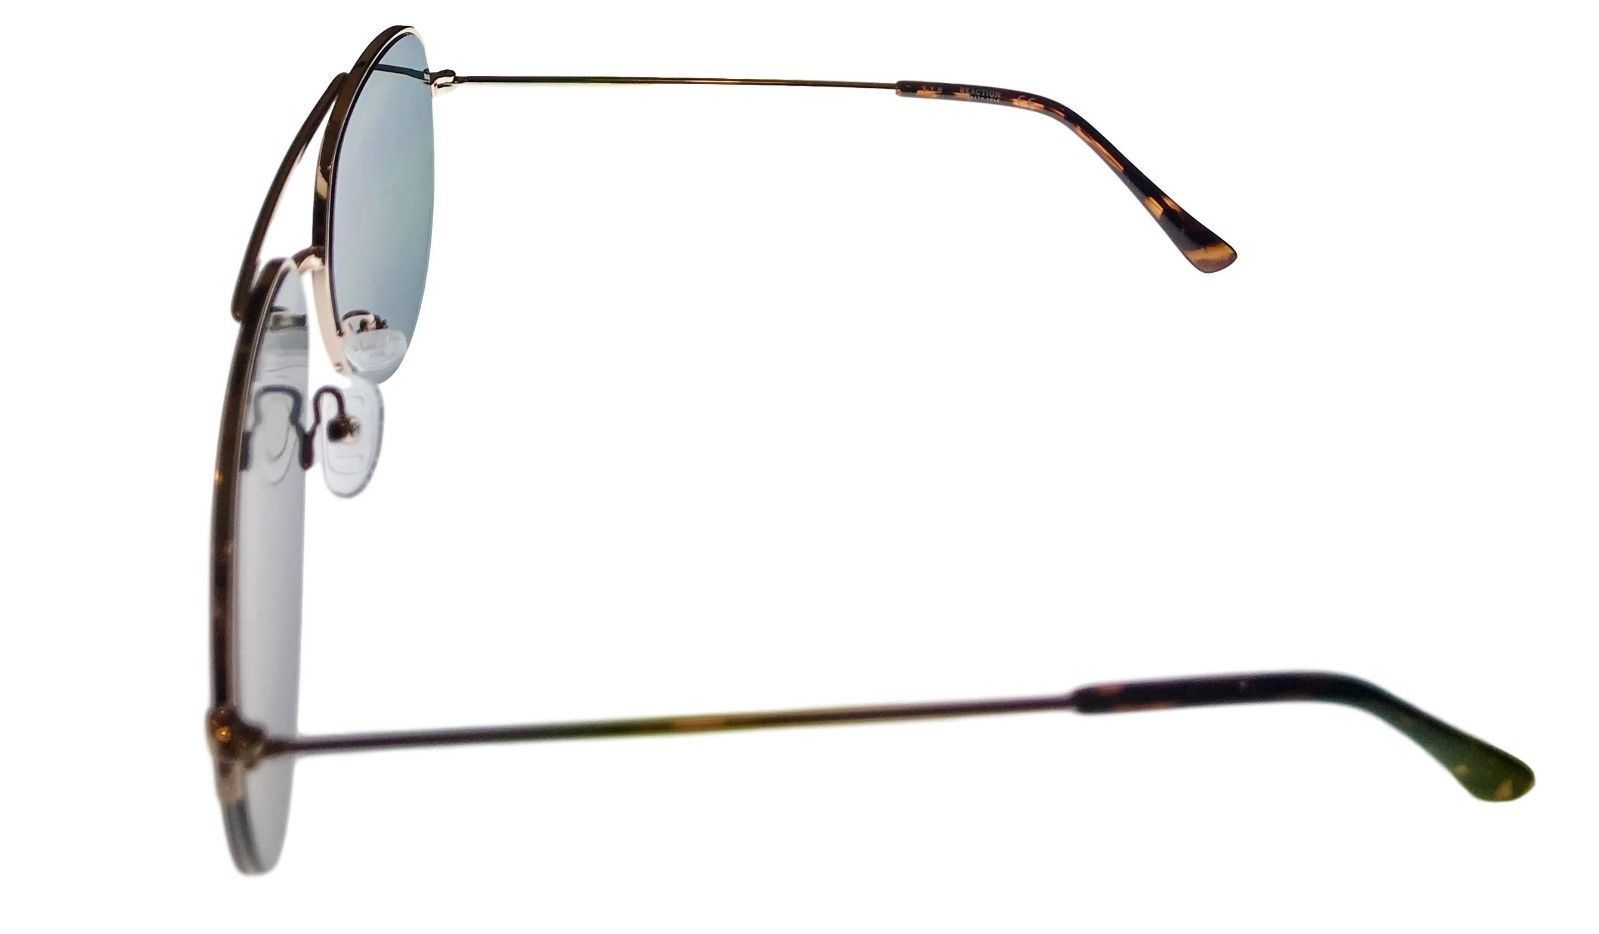 Kenneth Cole Reaction Mens Sunglass Gold Rimless Aviator, KC1307 32N image 3